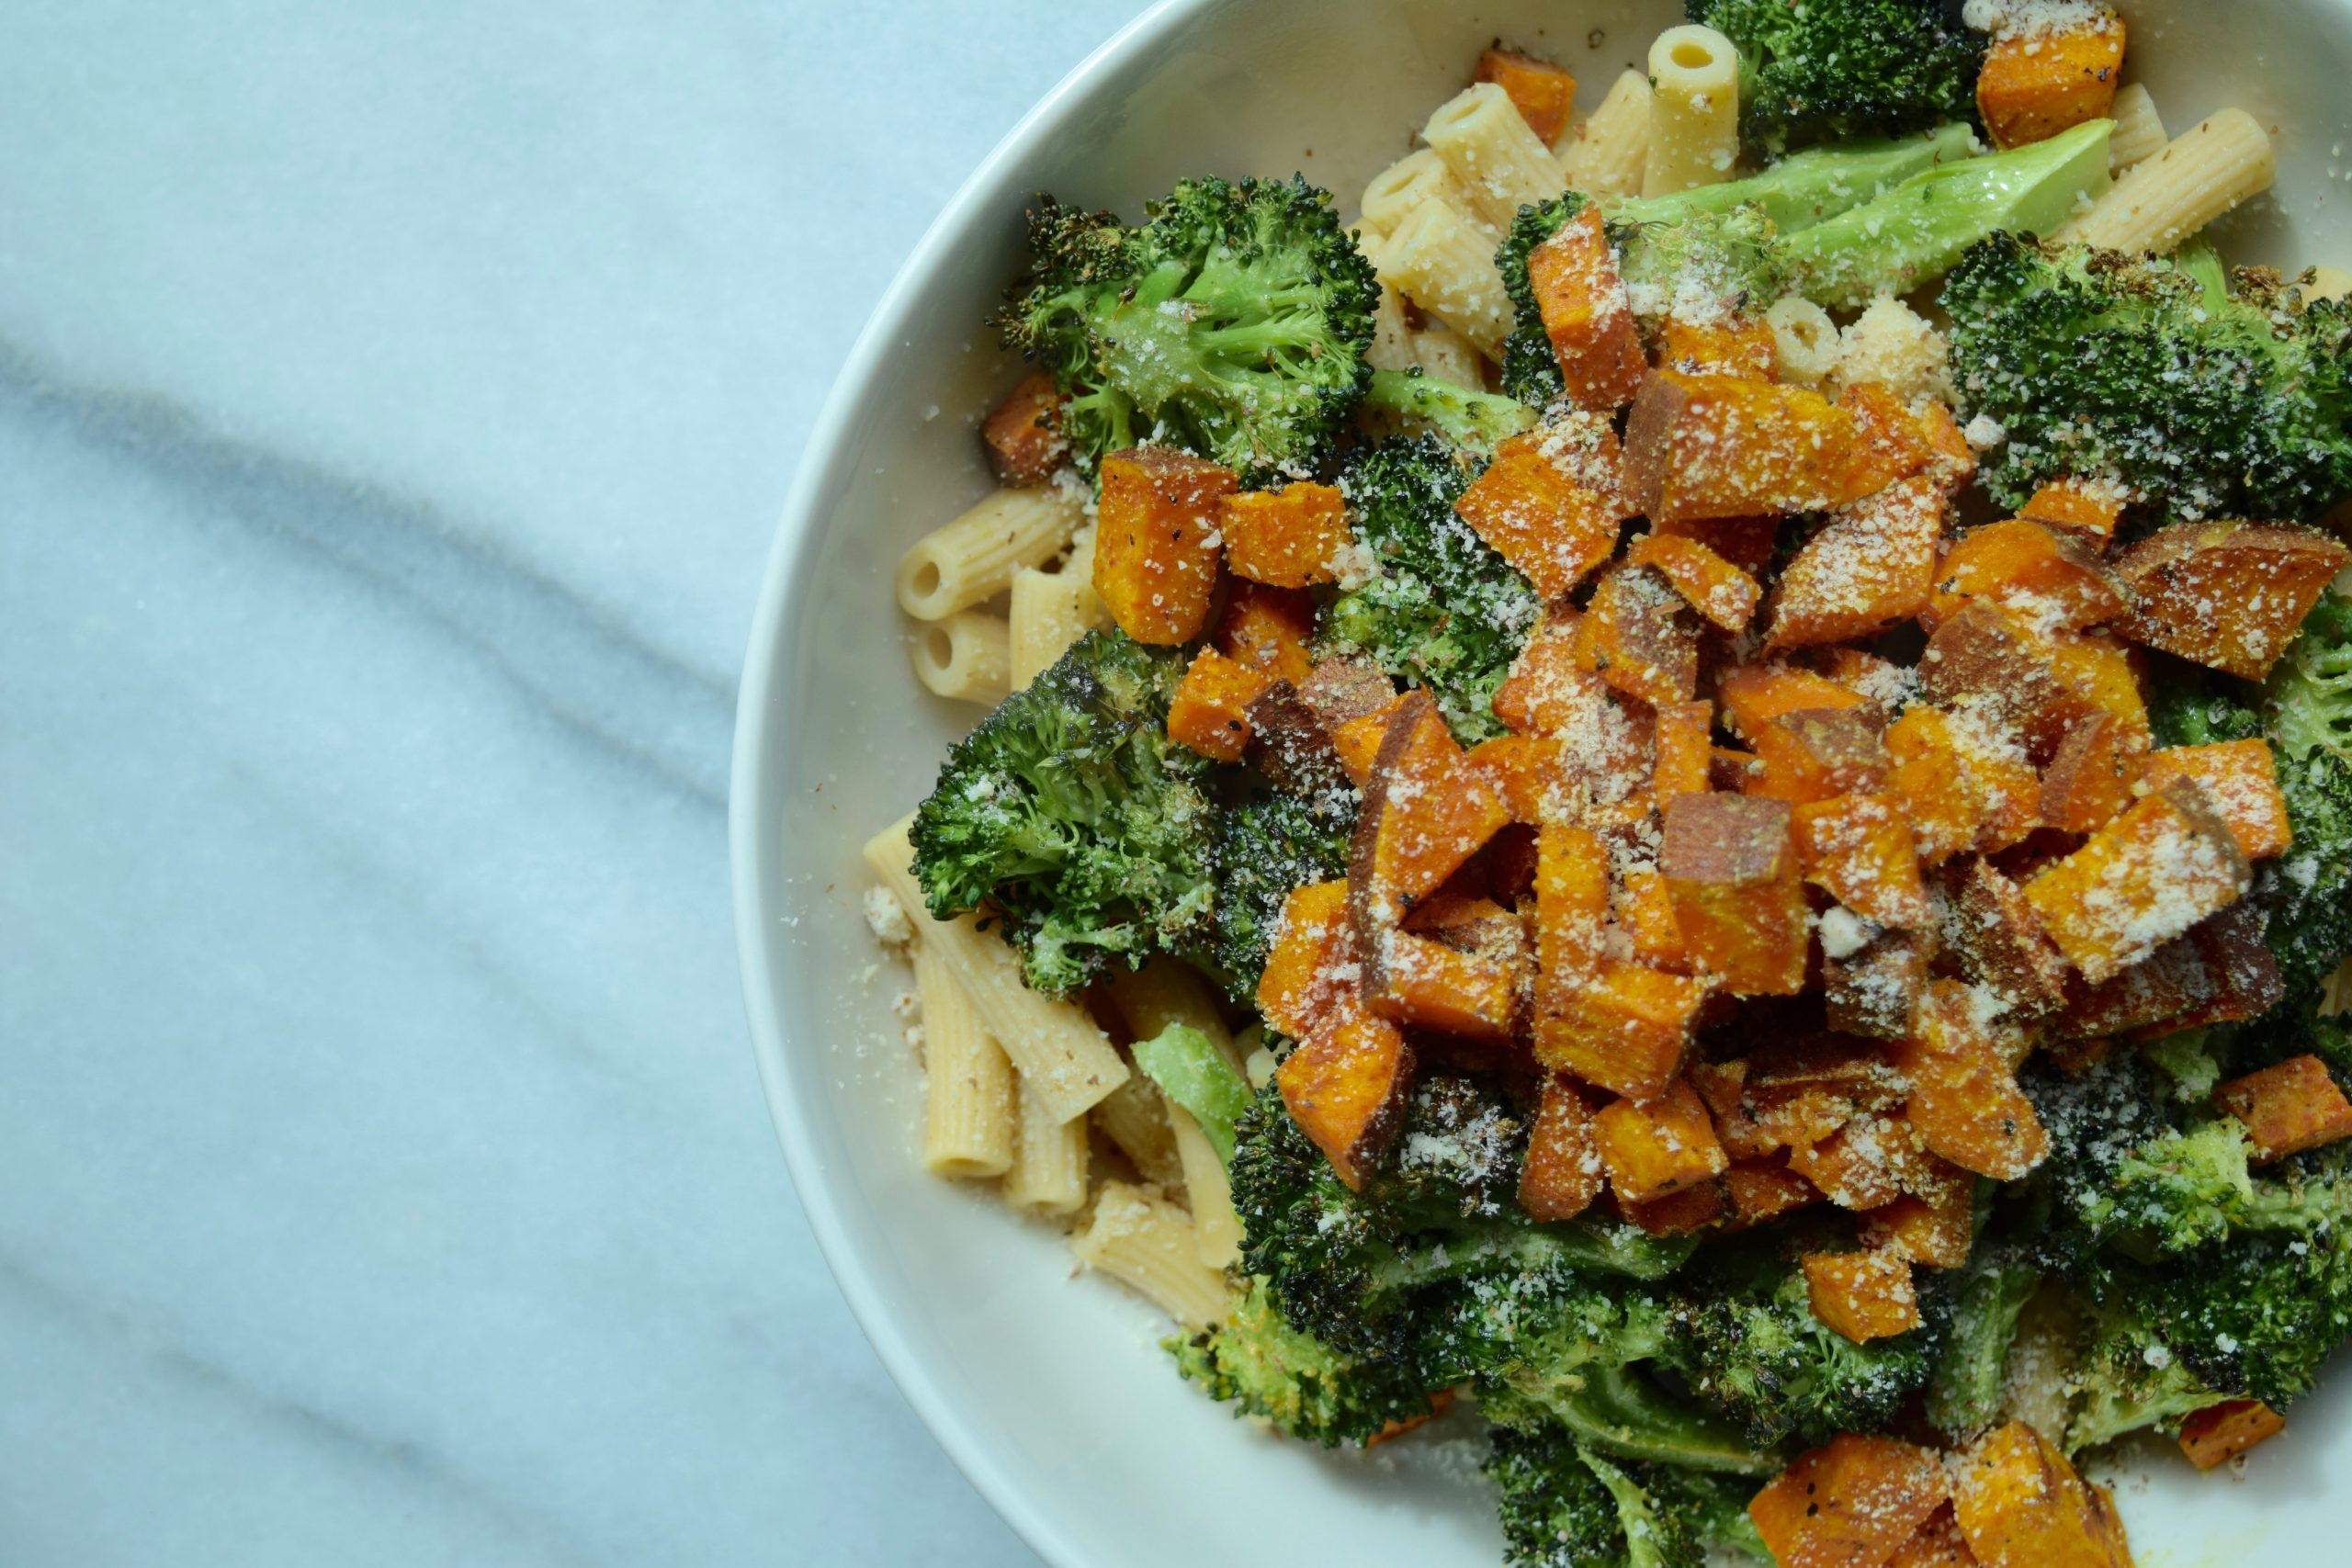 20 Min Meal Chickpea Pasta Primavera Healthy By Marlowe